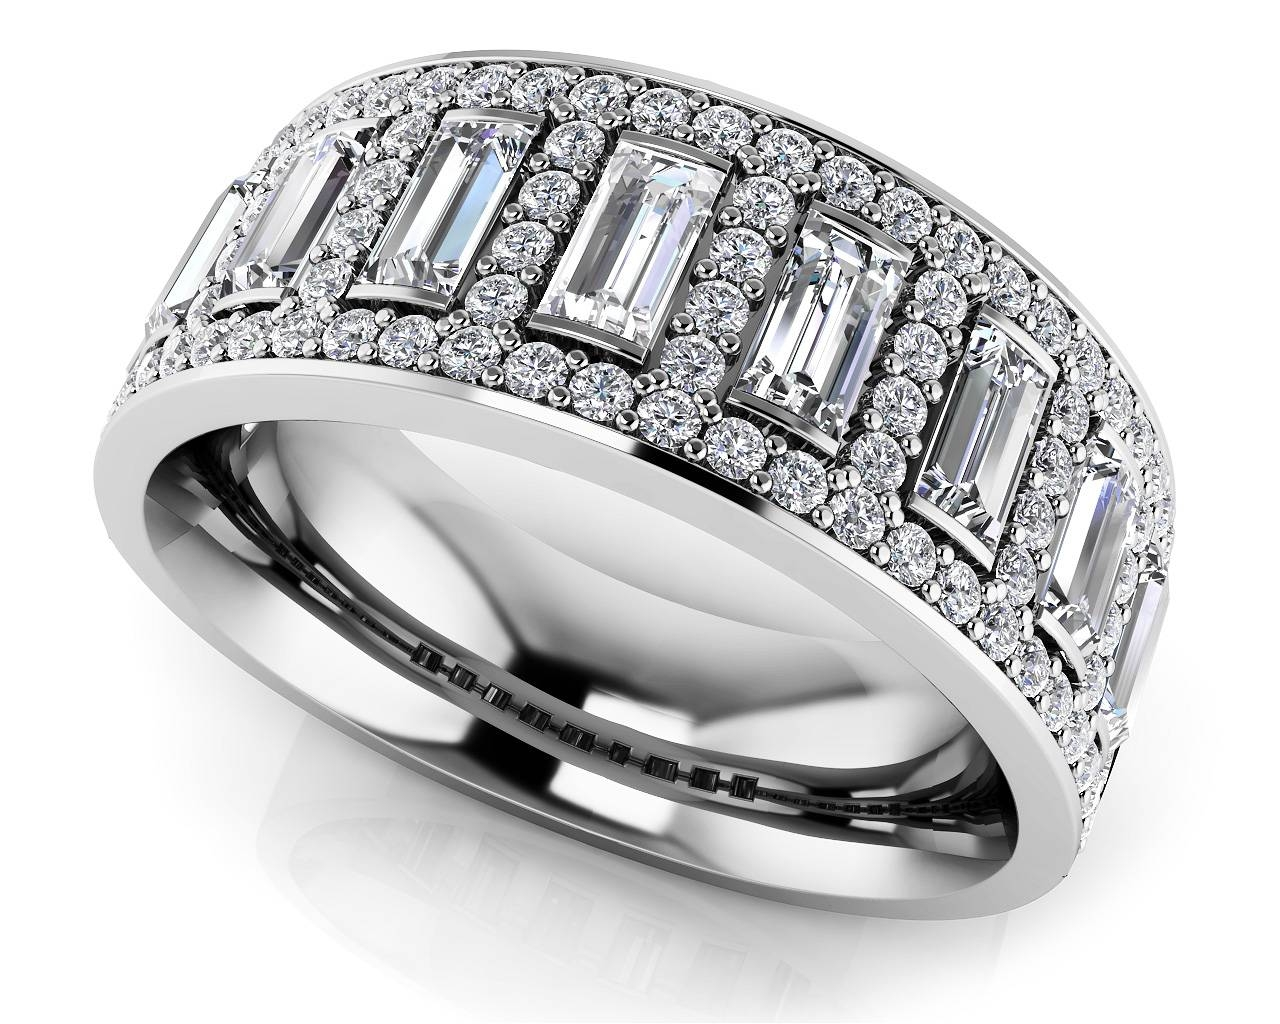 Design Your Own Diamond Anniversary Ring & Eternity Ring Within Best And Newest Anniversary Rings Designs (View 11 of 25)